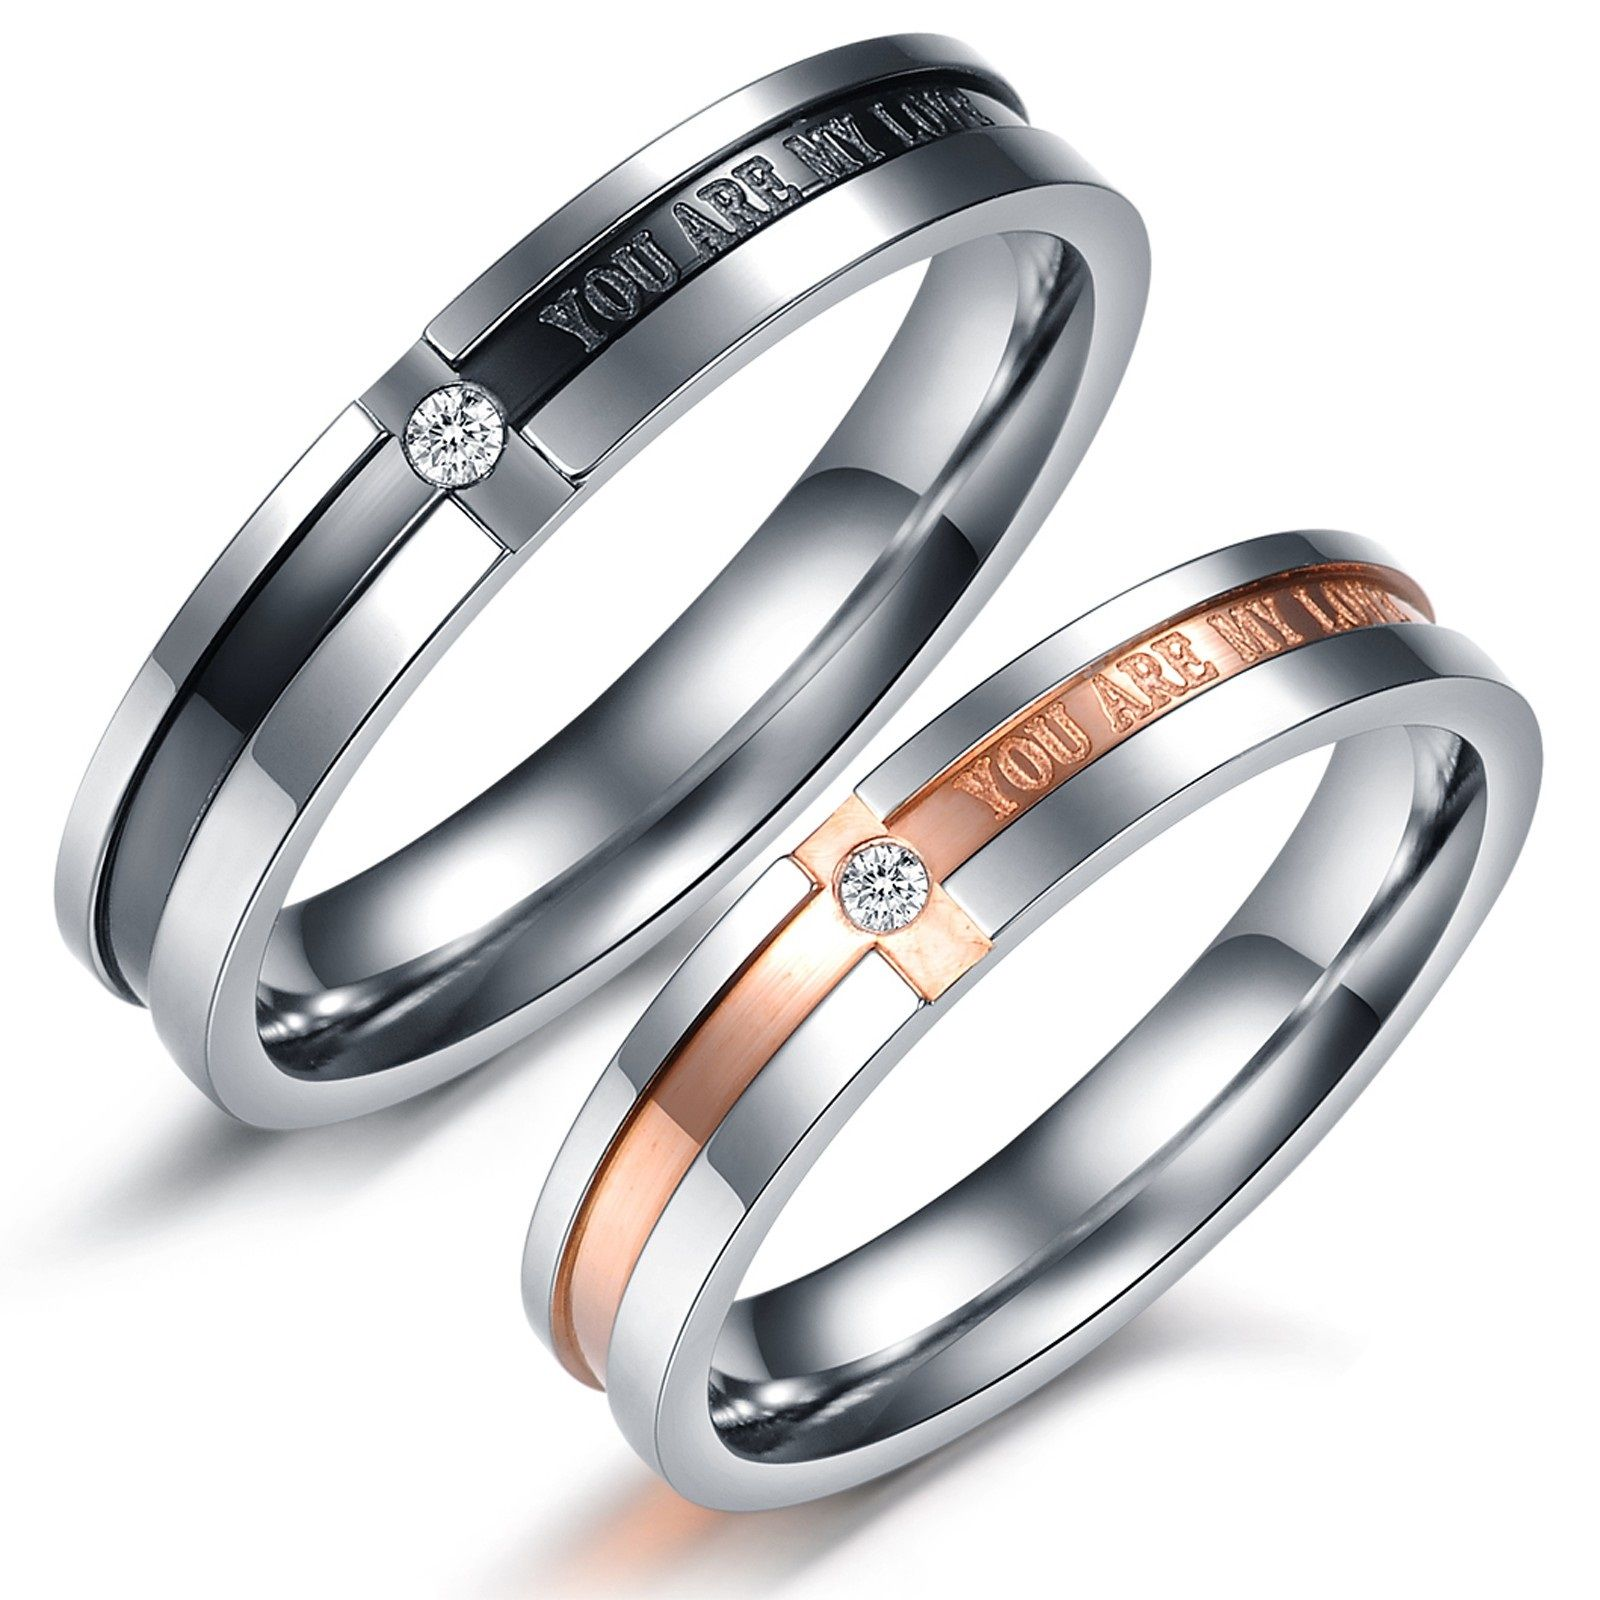 rings band online jewellery crossing lives designs bands latest couple coupleband